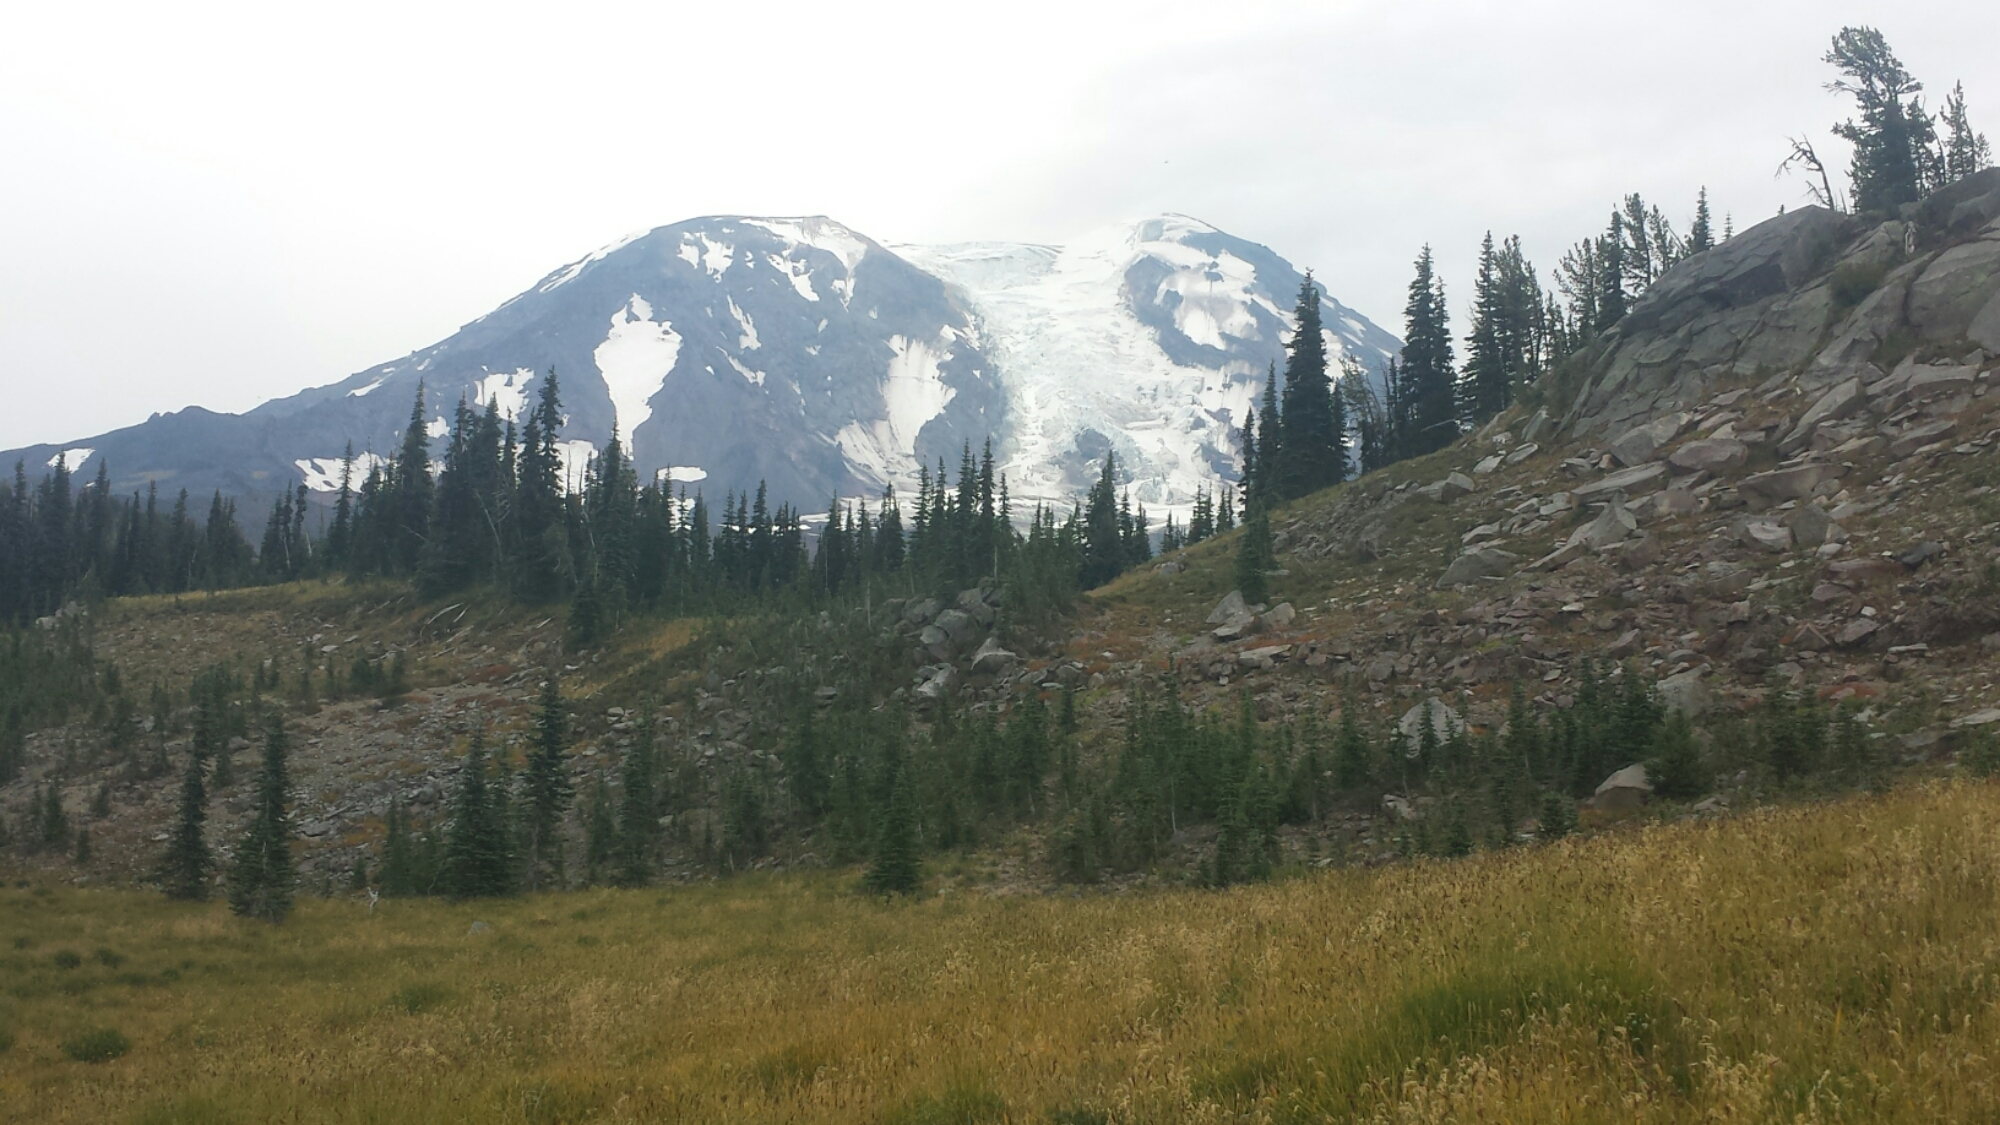 Mount Adams and Adams Glacier